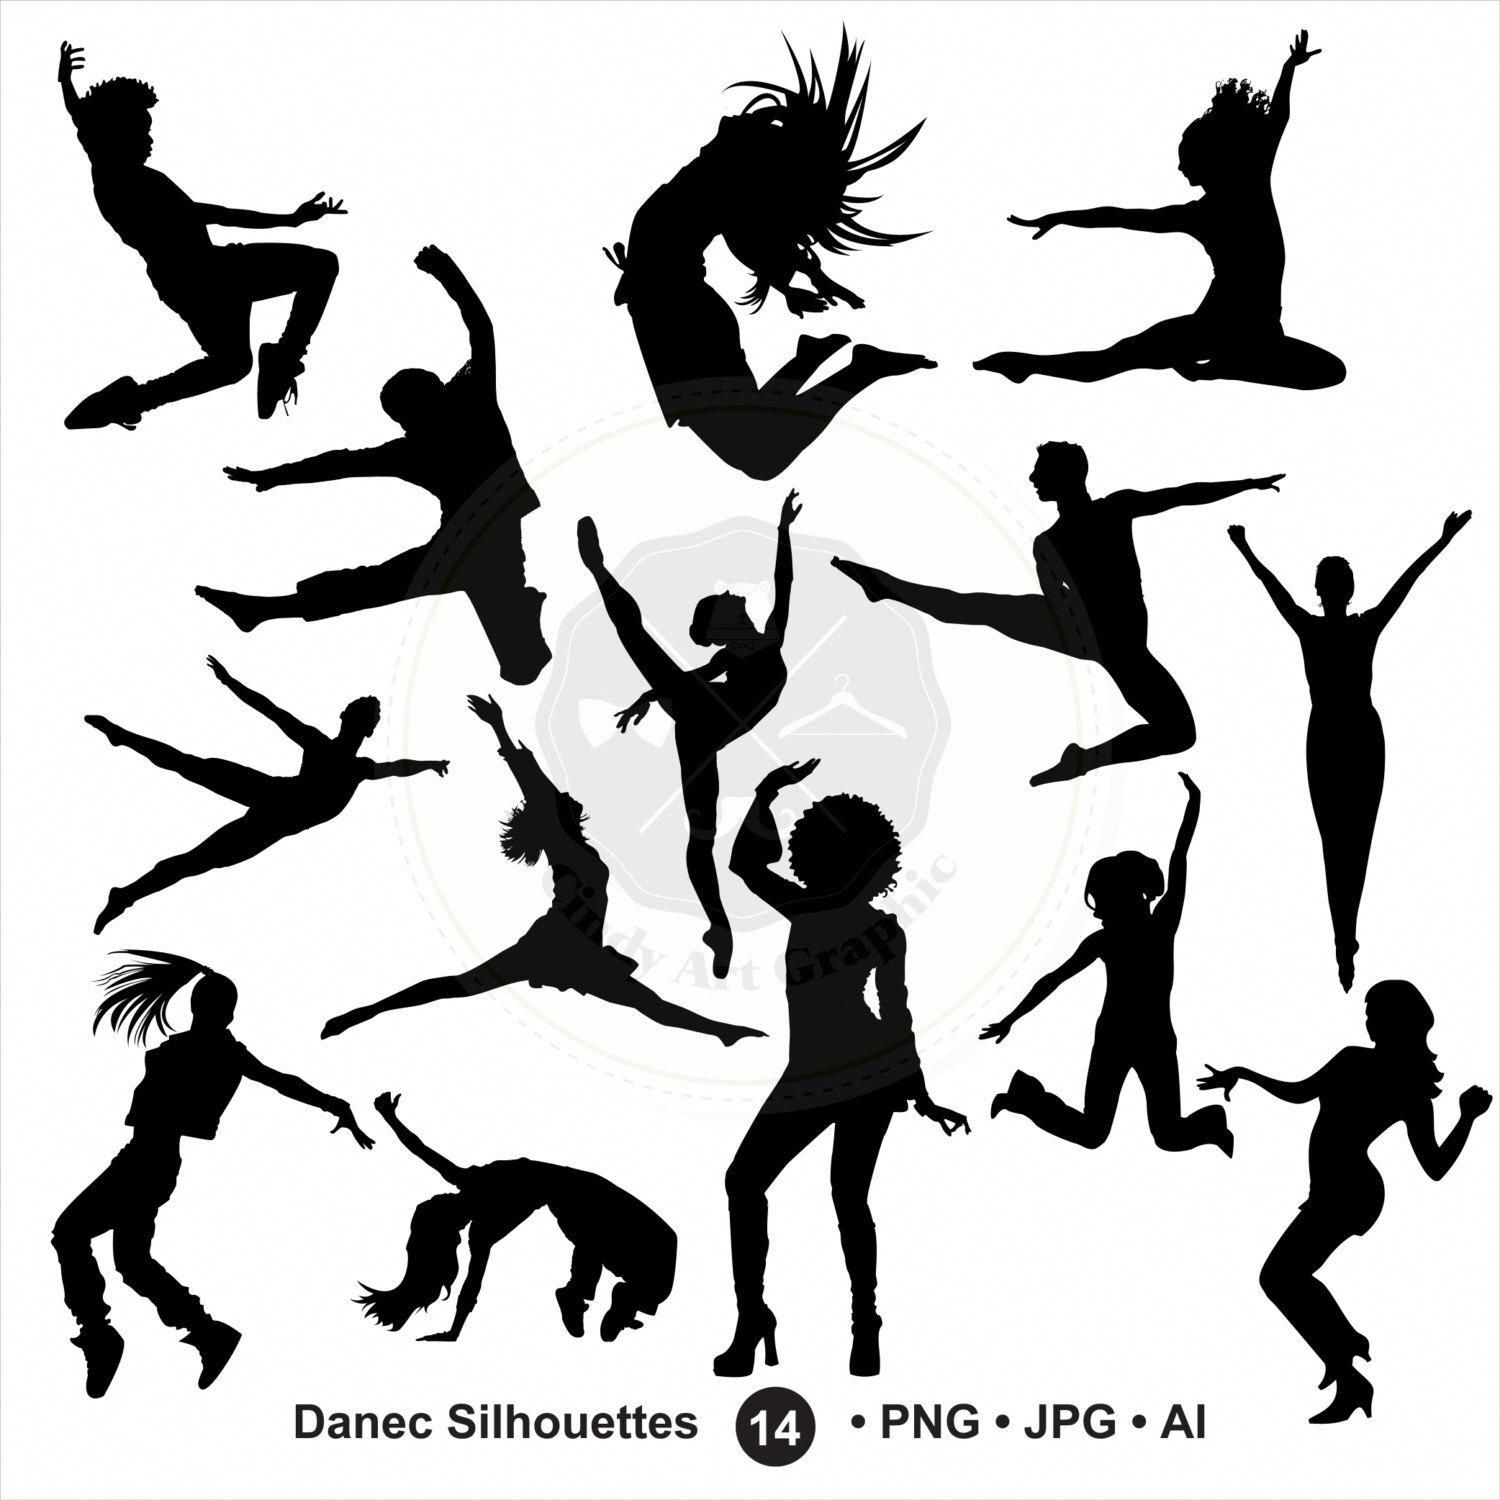 Dance Silhouettes Svgdancer Silhouettes Bundle Svg Dancer Etsy Dance Silhouette Dancer Silhouette Hip Hop Dance